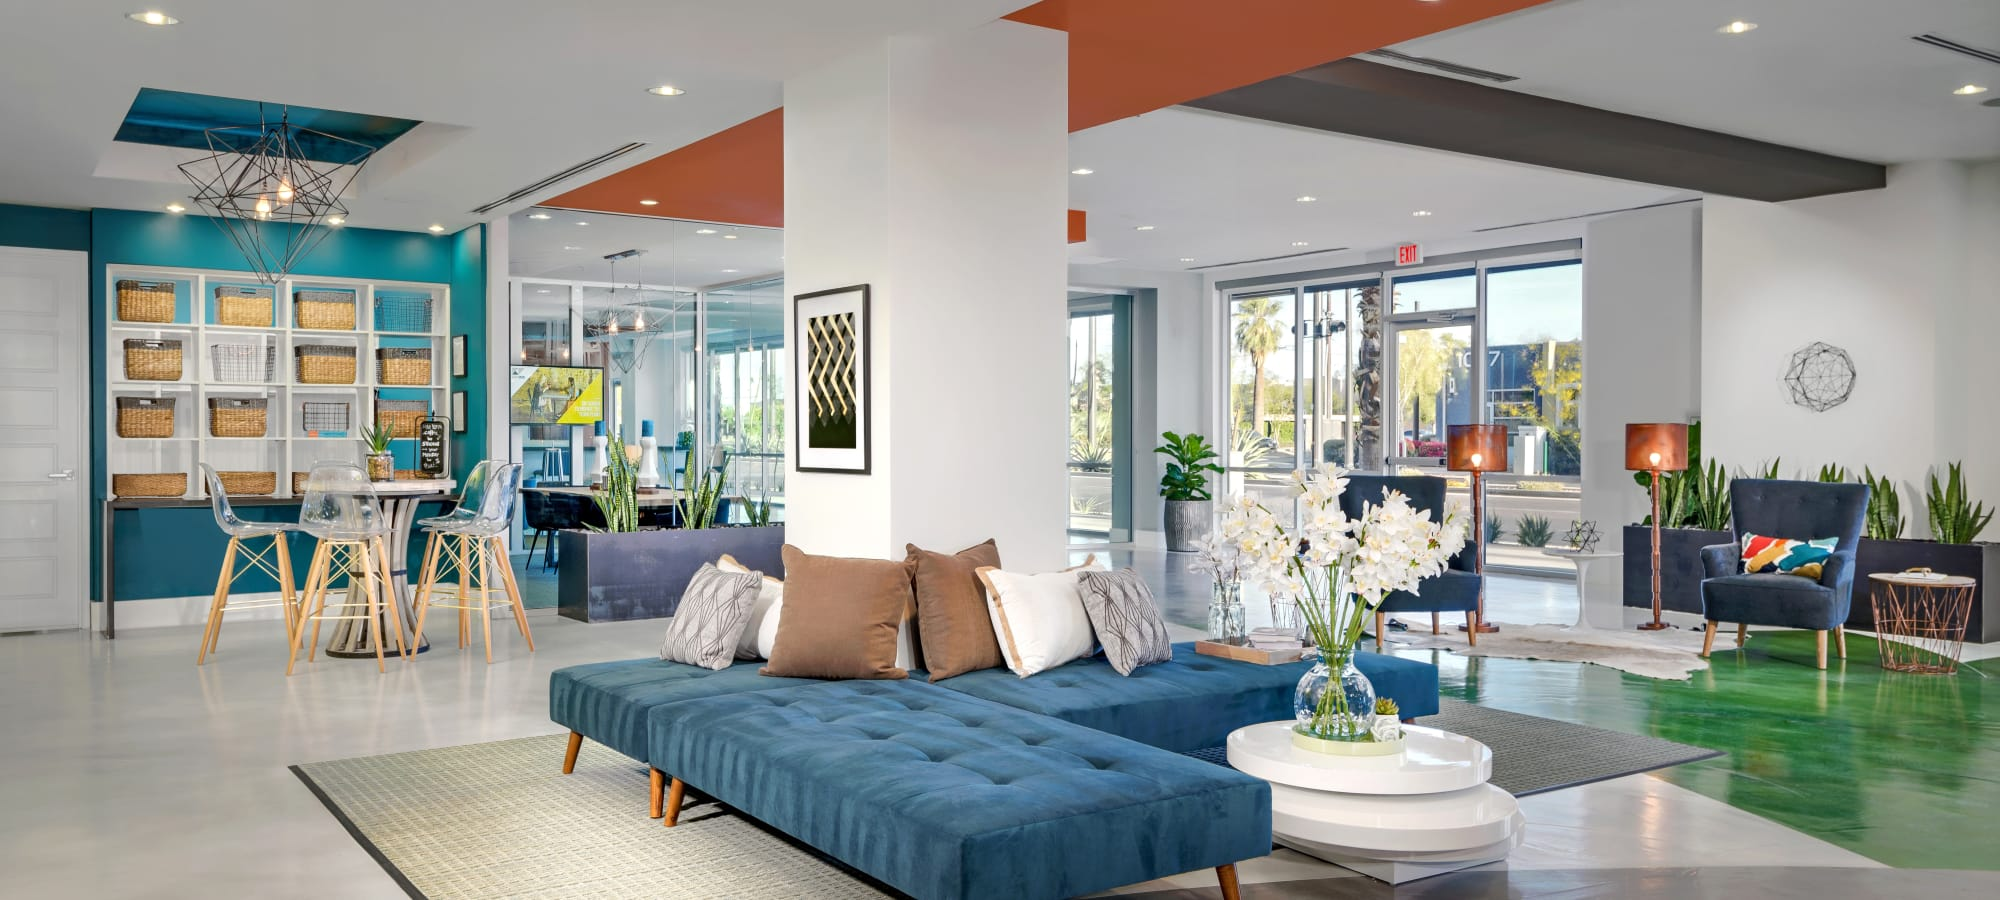 Gorgeous resident clubhouse interior at Capital Place in Phoenix, Arizona